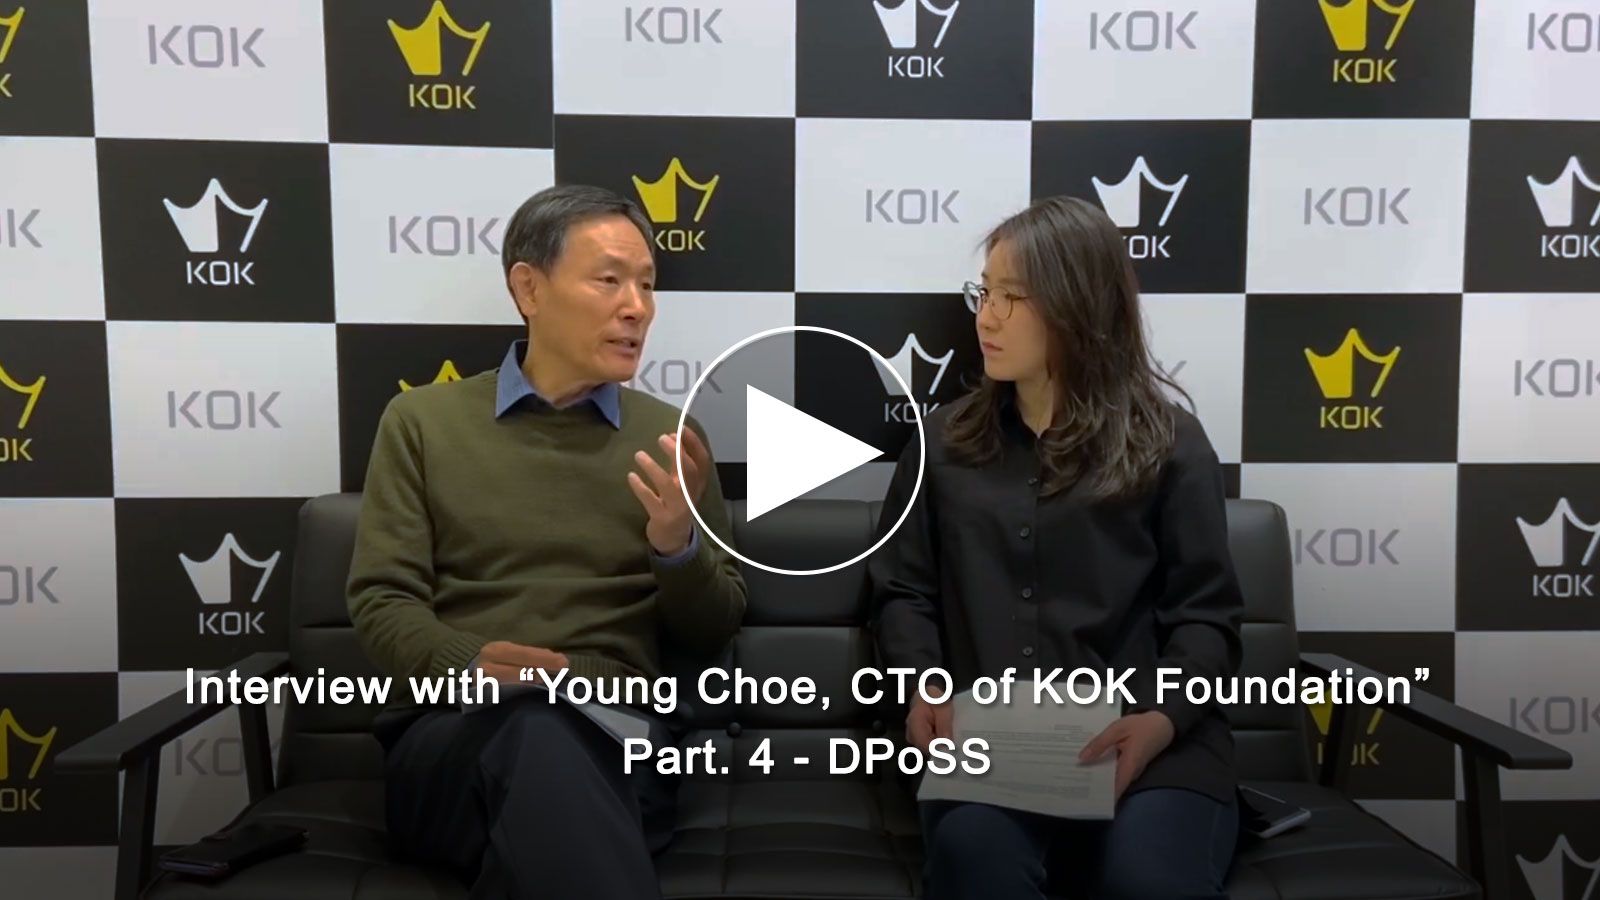 Interview with CTO Young Choe Part.4 - DPoSS